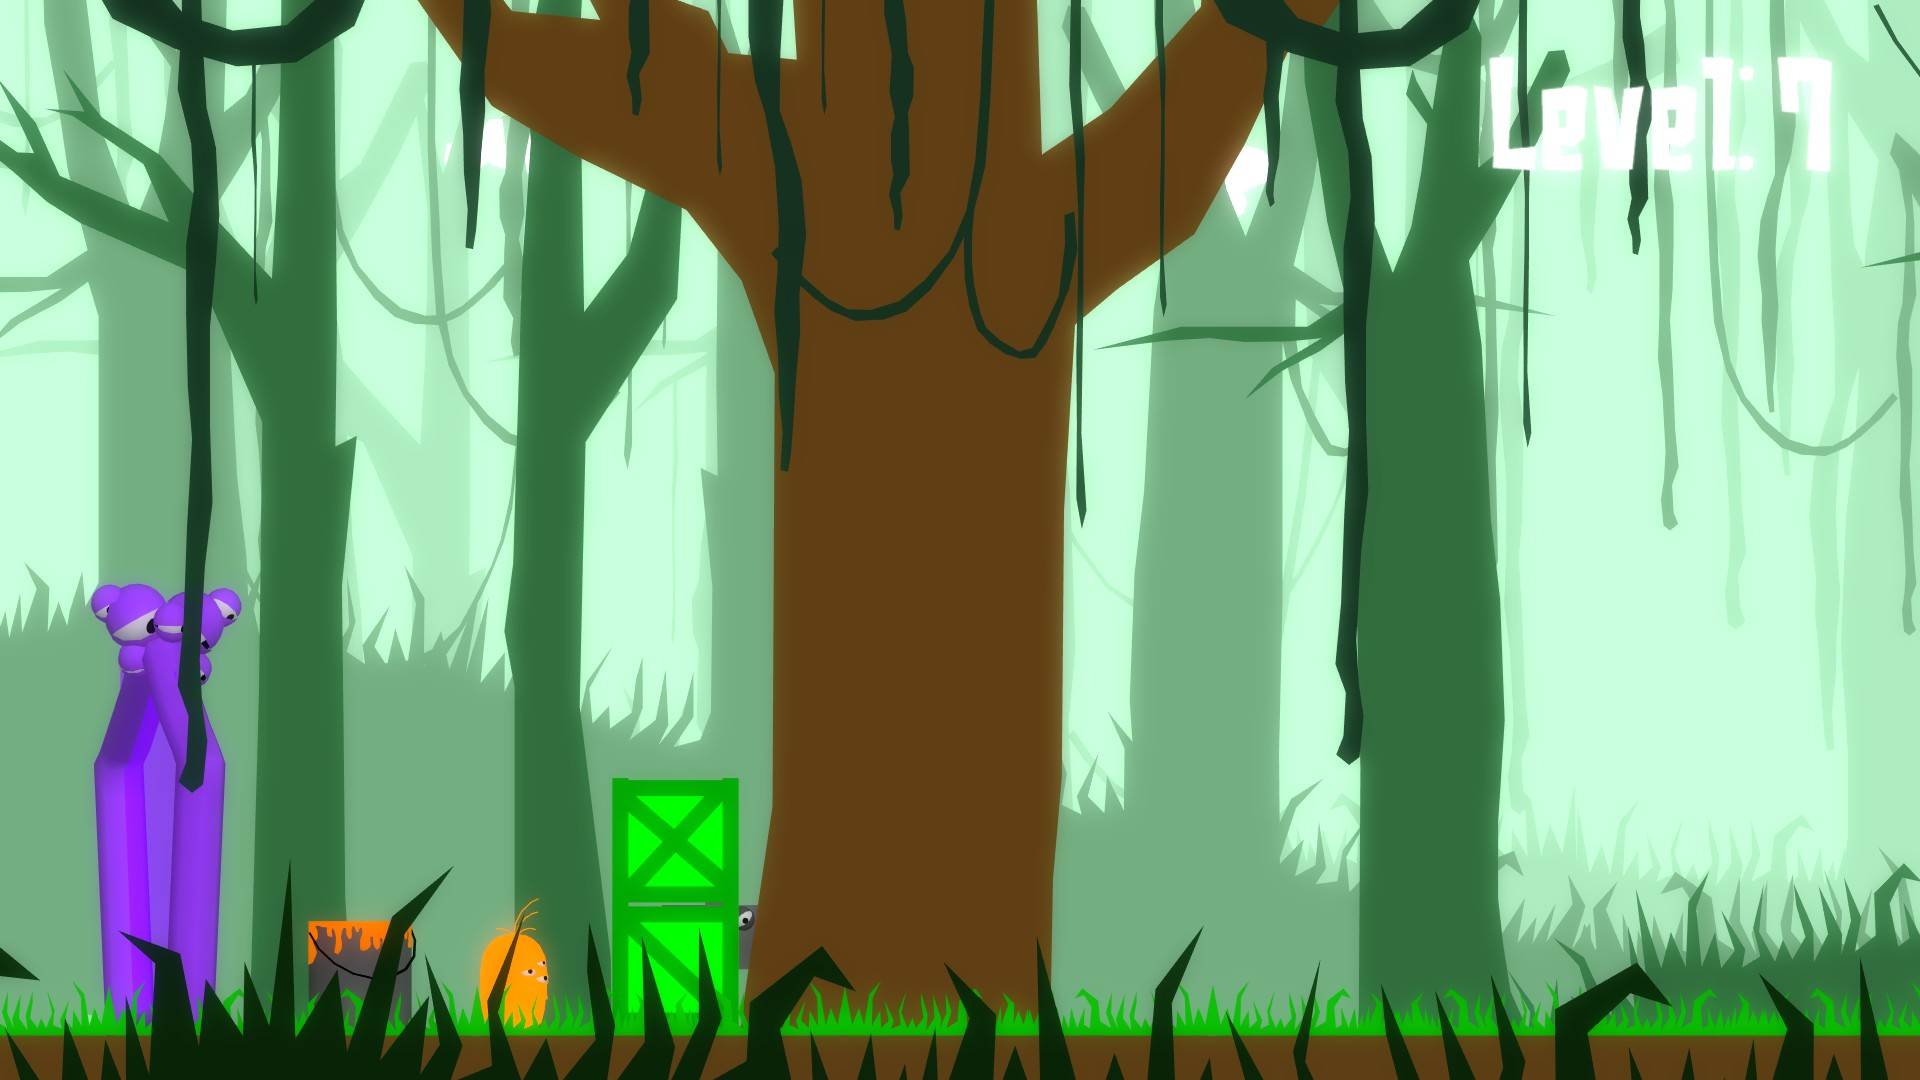 Coated level 7, the orange main character is trapped between a purple wall and green boxes which cover the goal. Only an orange paint bucket is accessible.